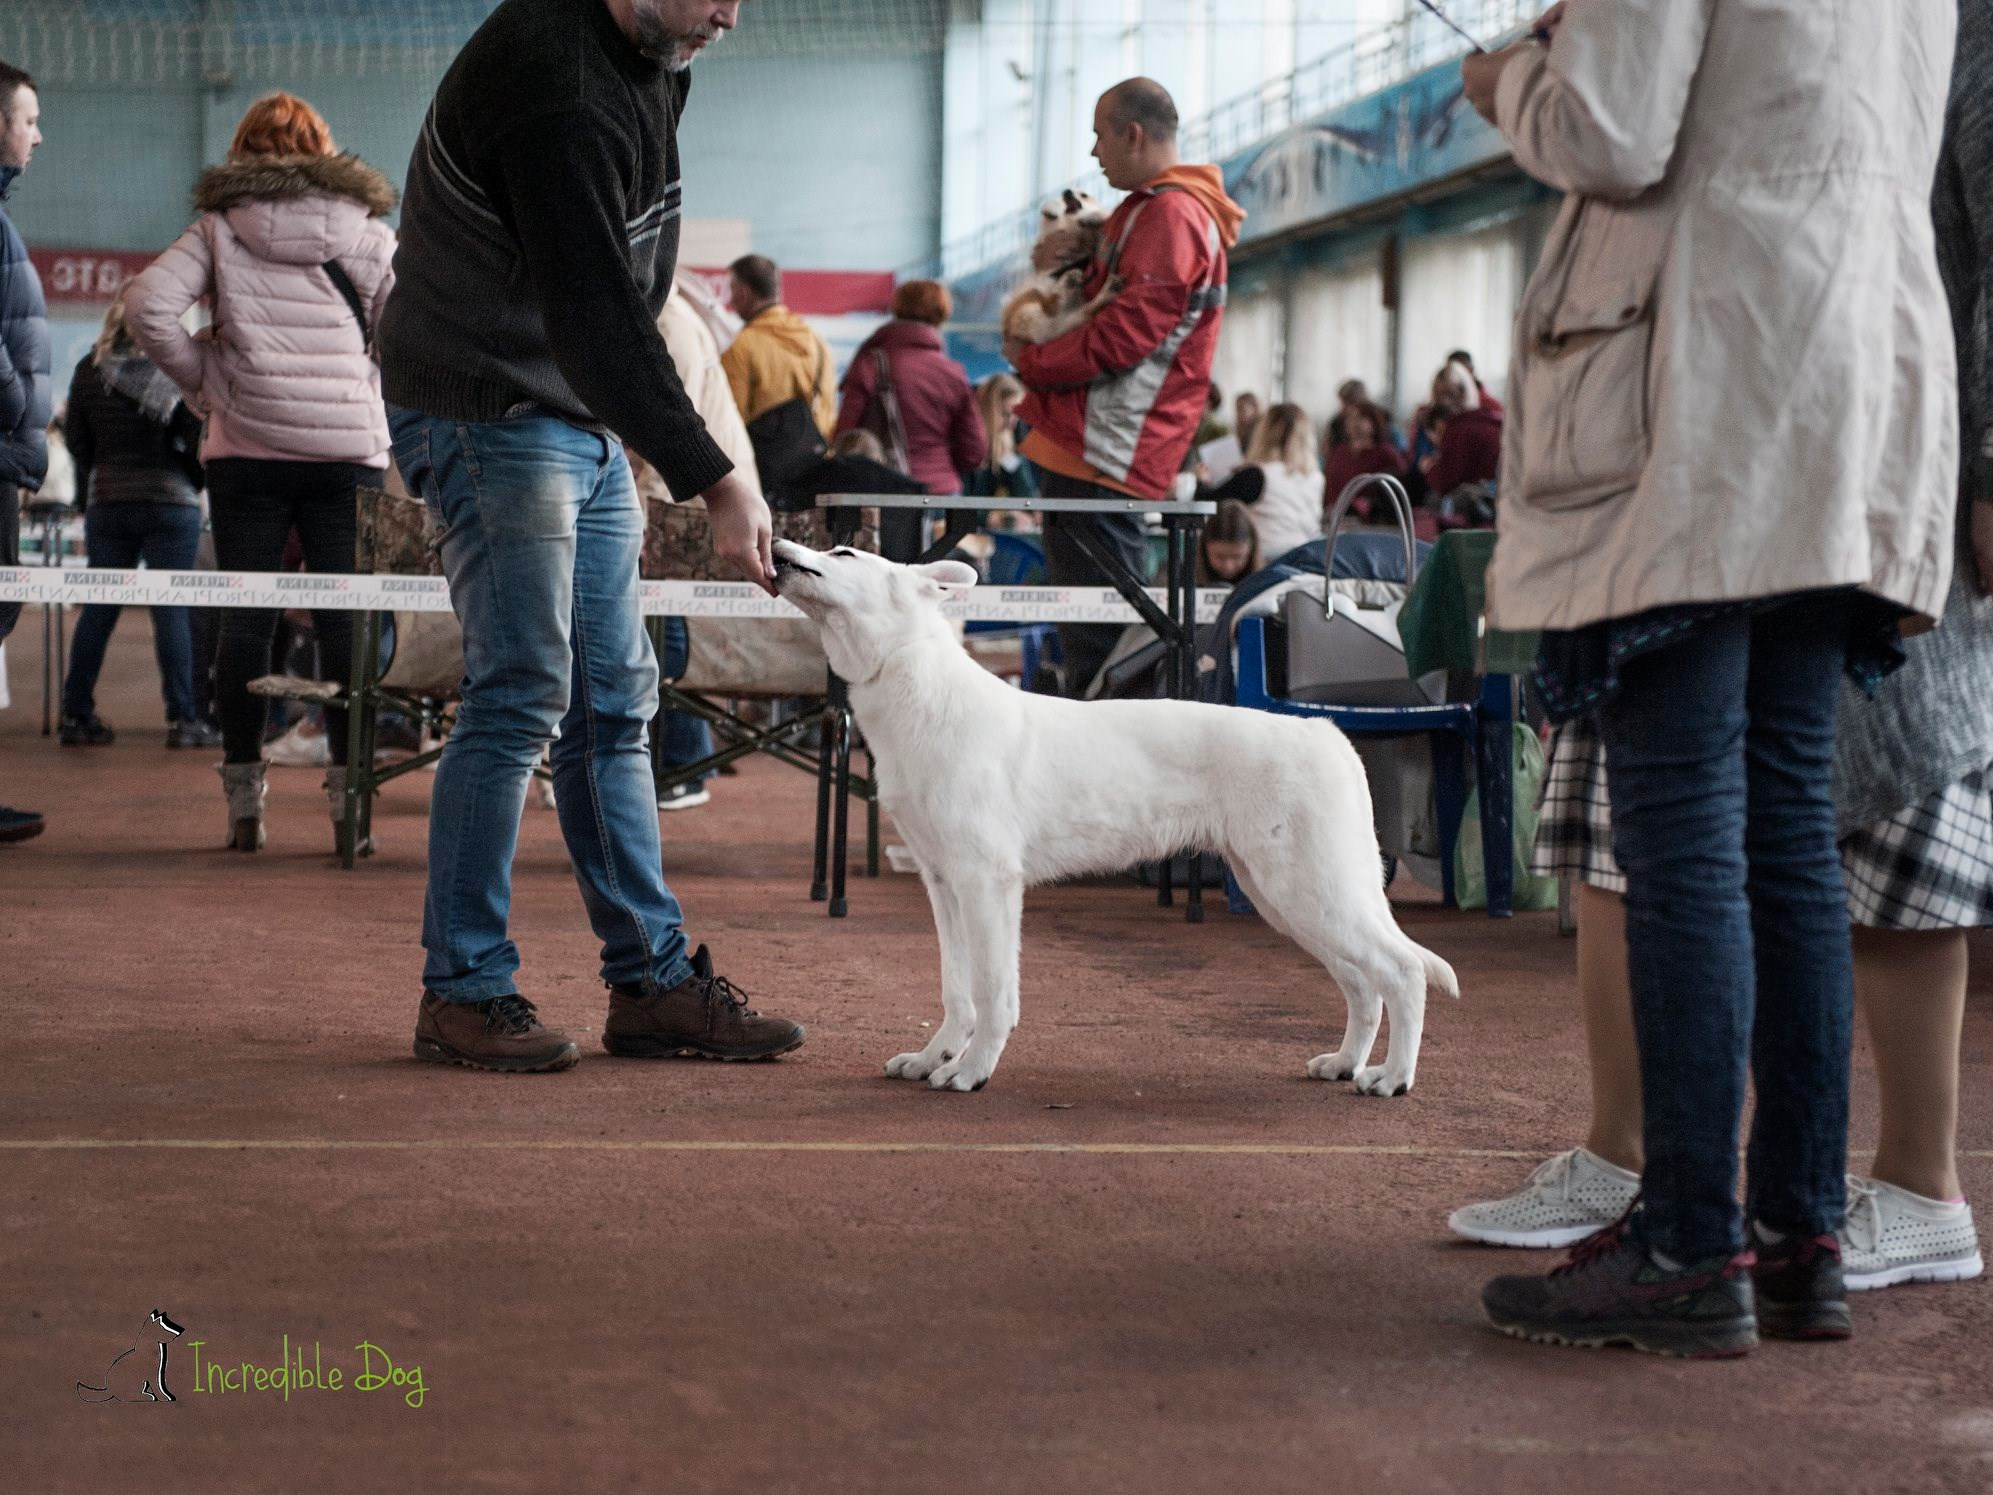 Born to Win White Zorro Puppy Favorit INCREDIBLE DOG VP, BEST PUPPY OF BREED and at MAIN RING OF BABY he got 2-nd place 2